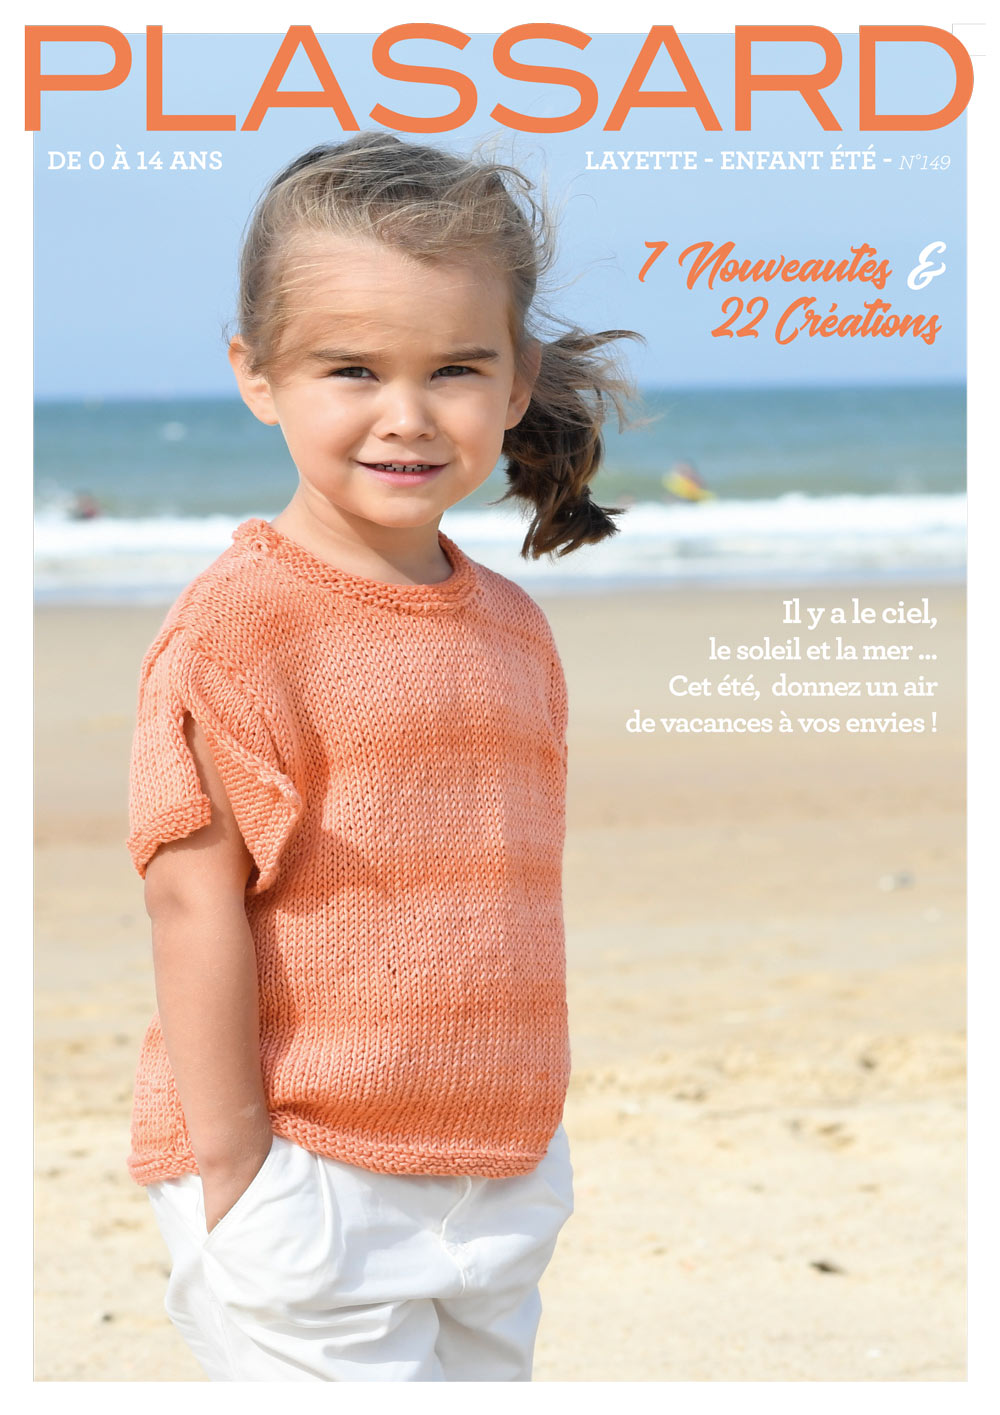 Catalogue Plassard n° 149 - Layette-Enfant Eté